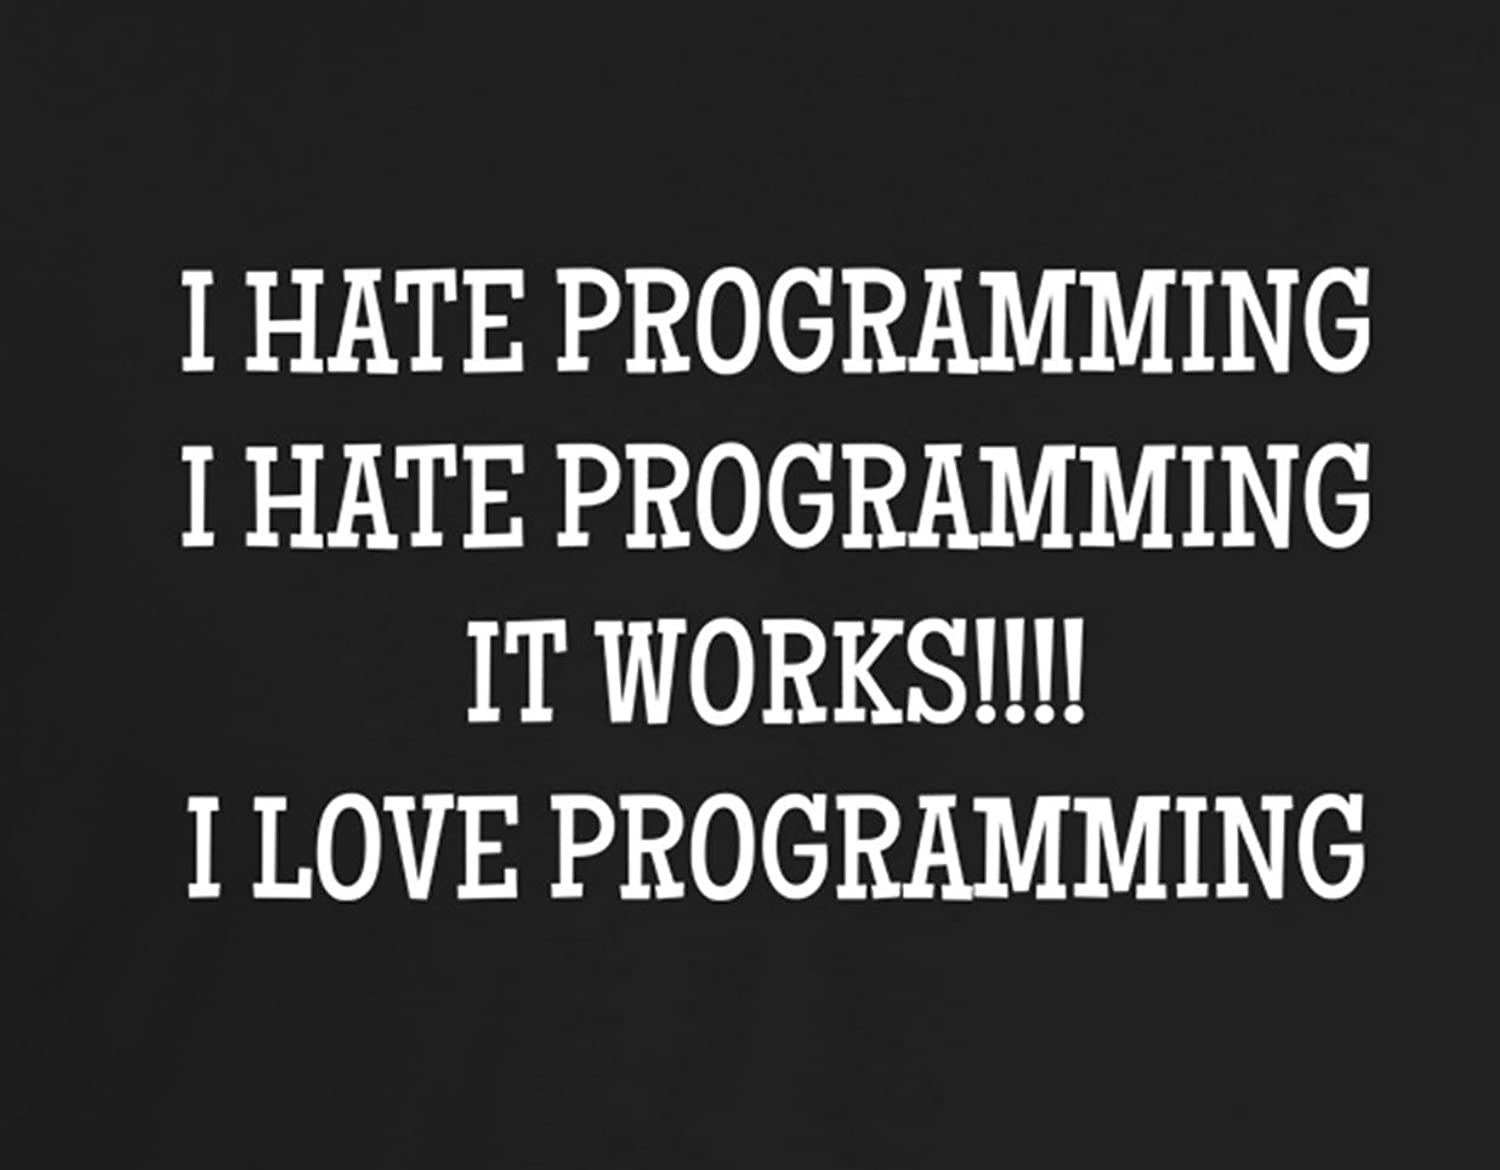 I hate programming, I hate programming, it works!!! I love programming